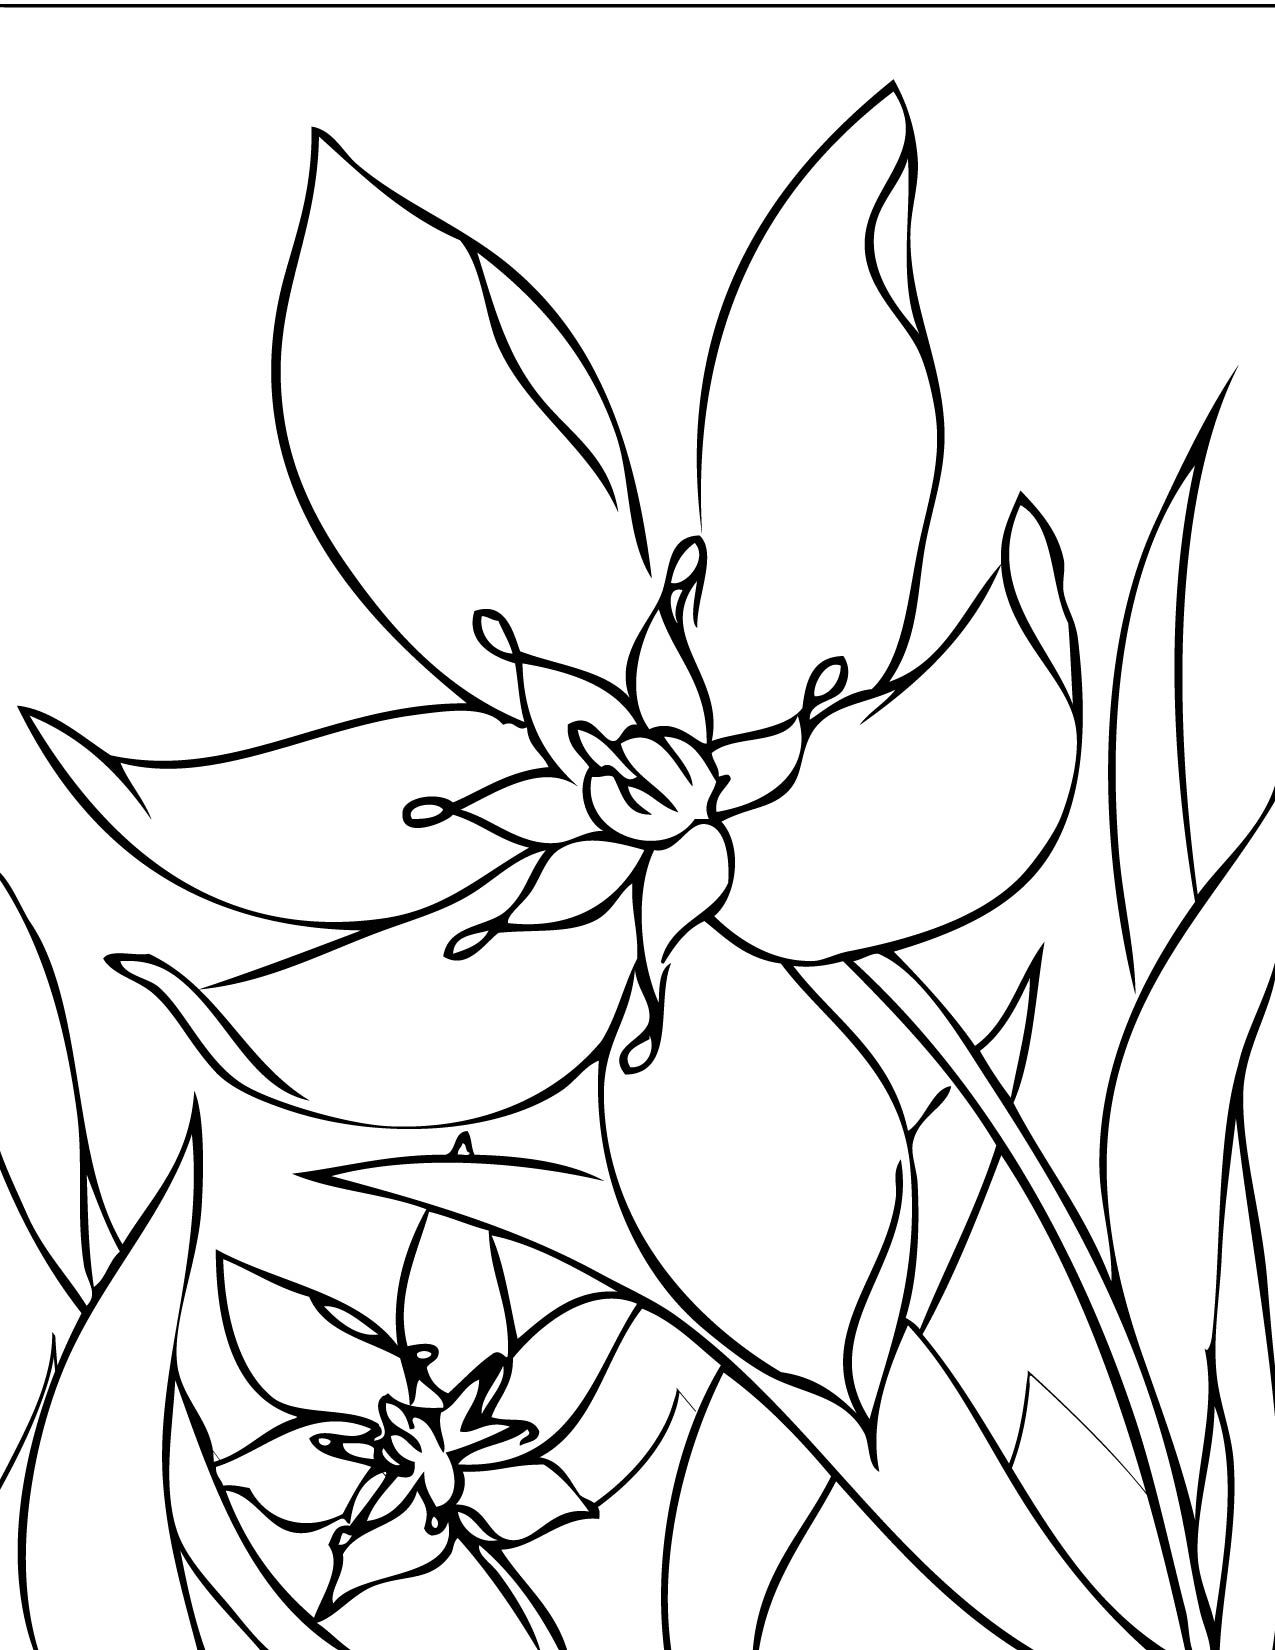 Printable coloring pages for spring - Flower Page Printable Coloring Sheets Print This Page Spring Flowers Coloring Pages Coloring